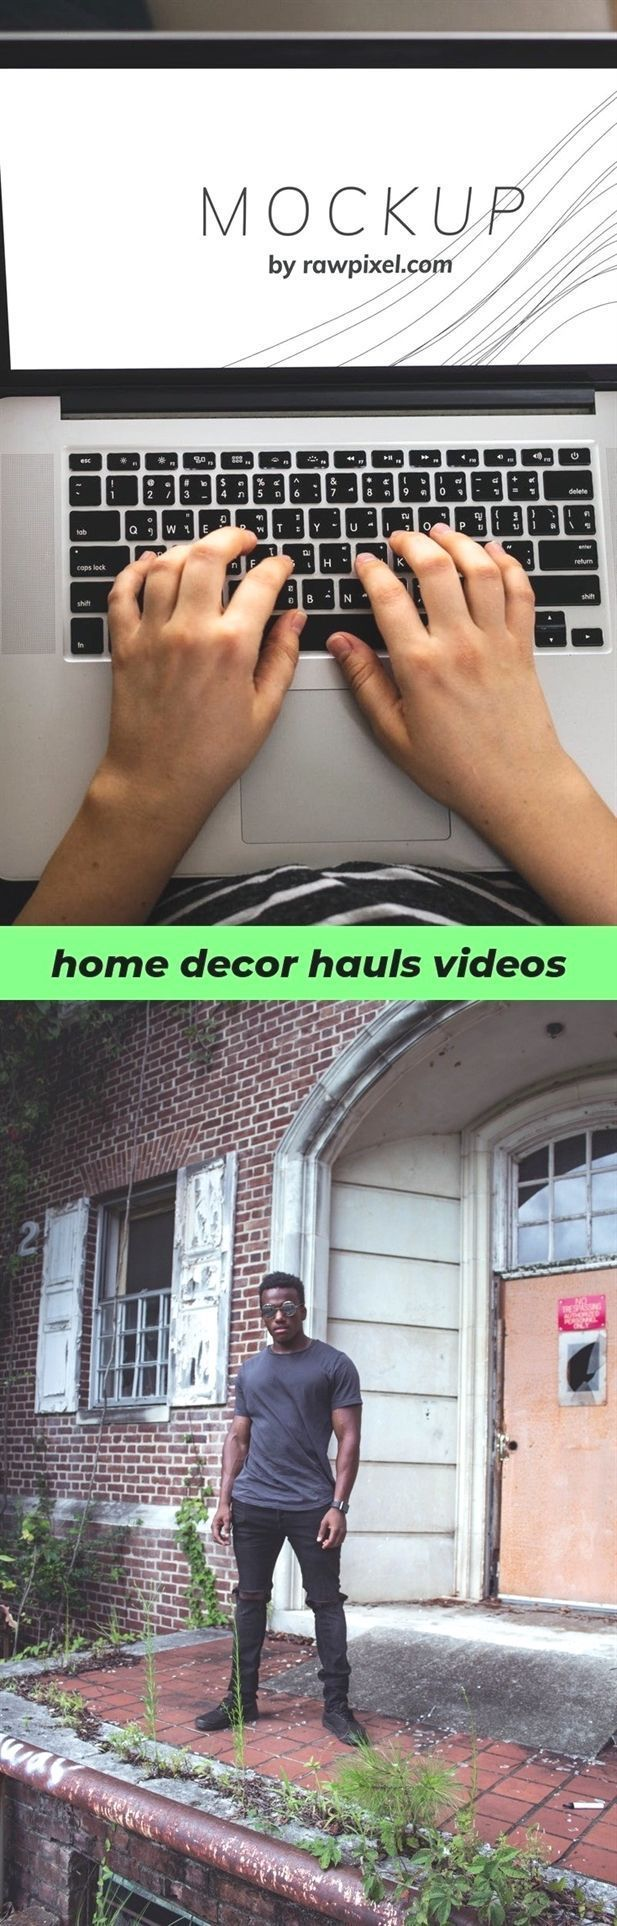 #home decor hauls videos_345_20190401185124_62    #home decor youtubers,  car decor decals,  home decor for living room table,  home portugal campaña,  simple home xmas decorations,  home decor hacks 5 minute crafts video,  home decor asmr youtube videos,  home decor balls spheres orbs in the sky, #5minutecraftsvideos #home decor hauls videos_345_20190401185124_62    #home decor youtubers,  car decor decals,  home decor for living room table,  home portugal campaña,  simple home xmas decoratio #5minutecraftsvideos